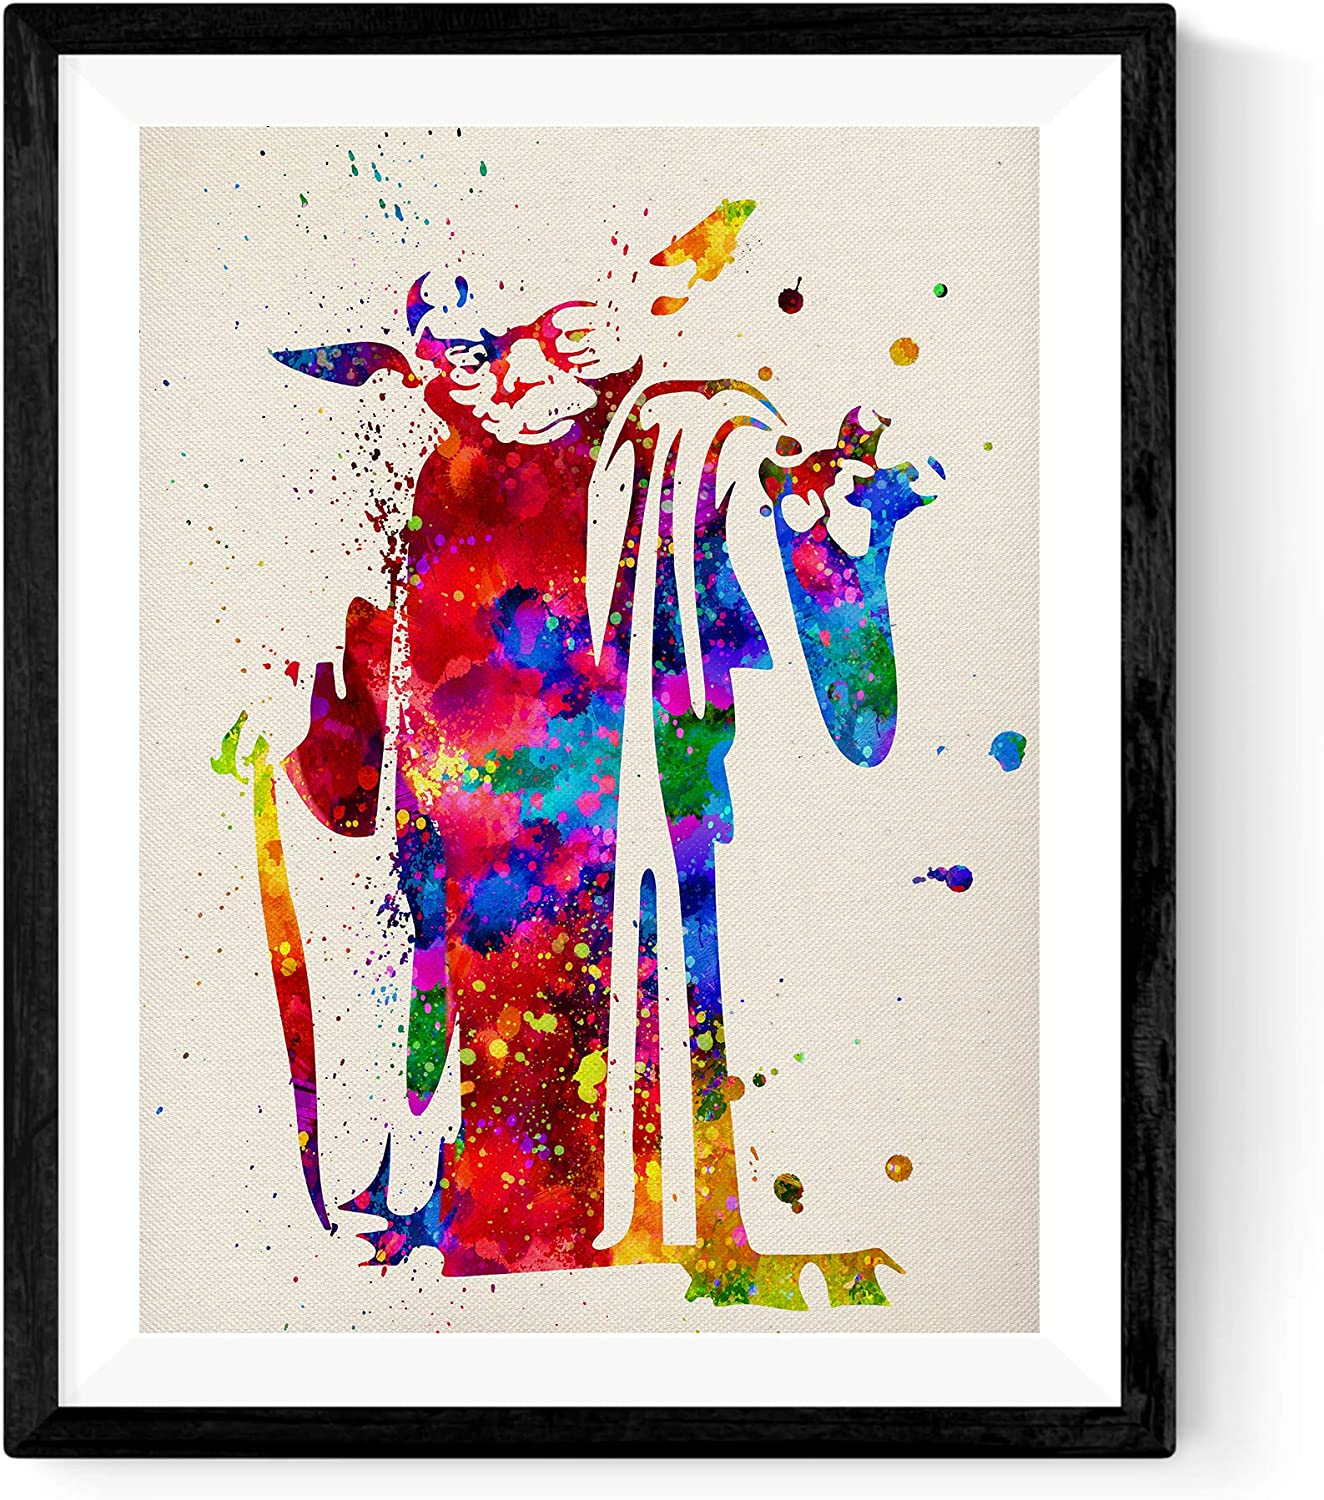 Nacnic Prints Yoda Star Wars Character - Set of 1 - Unframed 11x17 inch Size - 250g Paper - Beautiful Poster Painting for Home Office Living Room